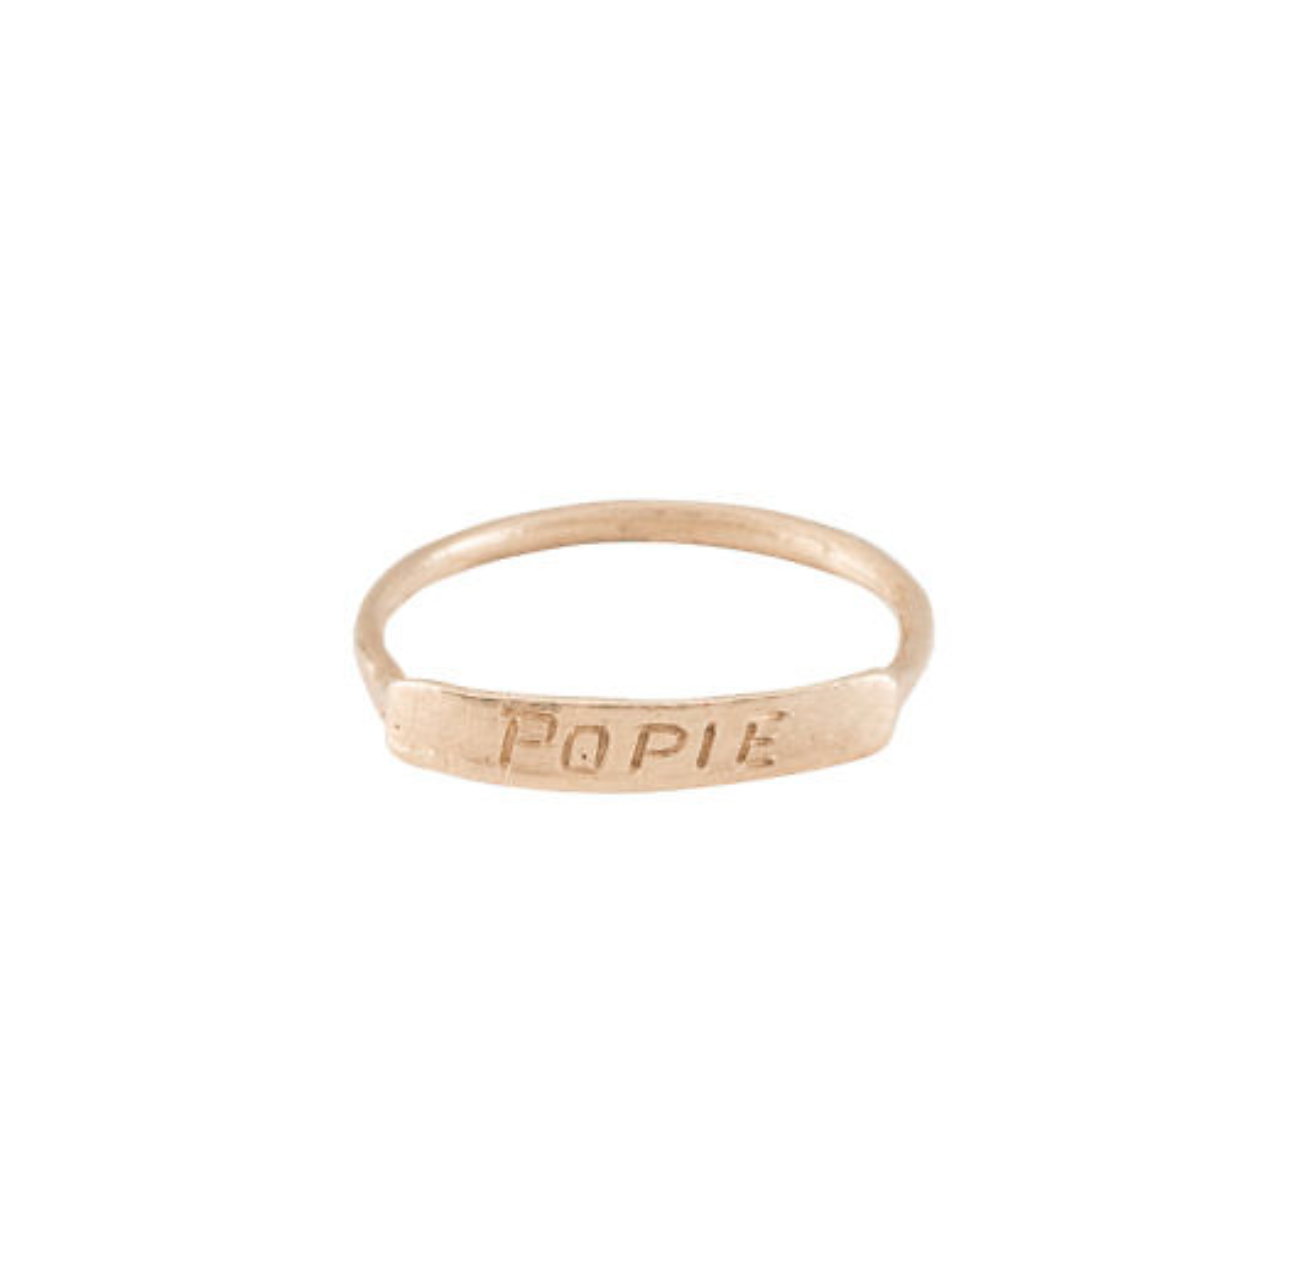 My Favorite Jewelry Designers For Unique Jewelry: Jane Pope Jewelry Name Ring